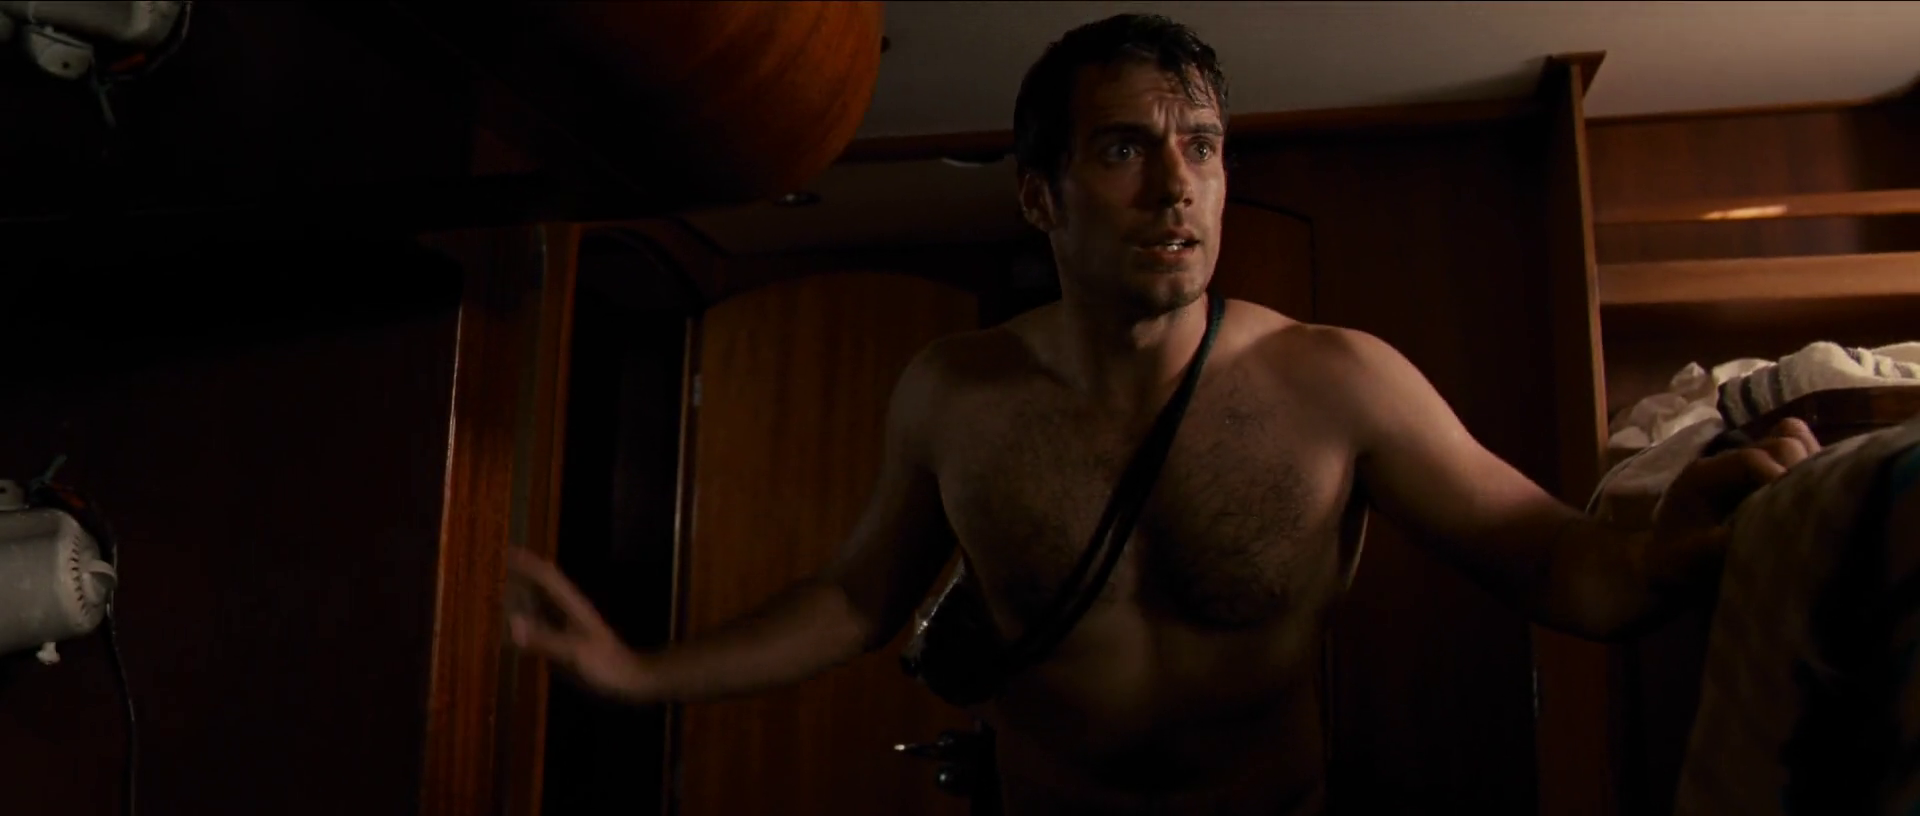 Henry Cavill as Will Shaw shirtless in The Cold Light of Day